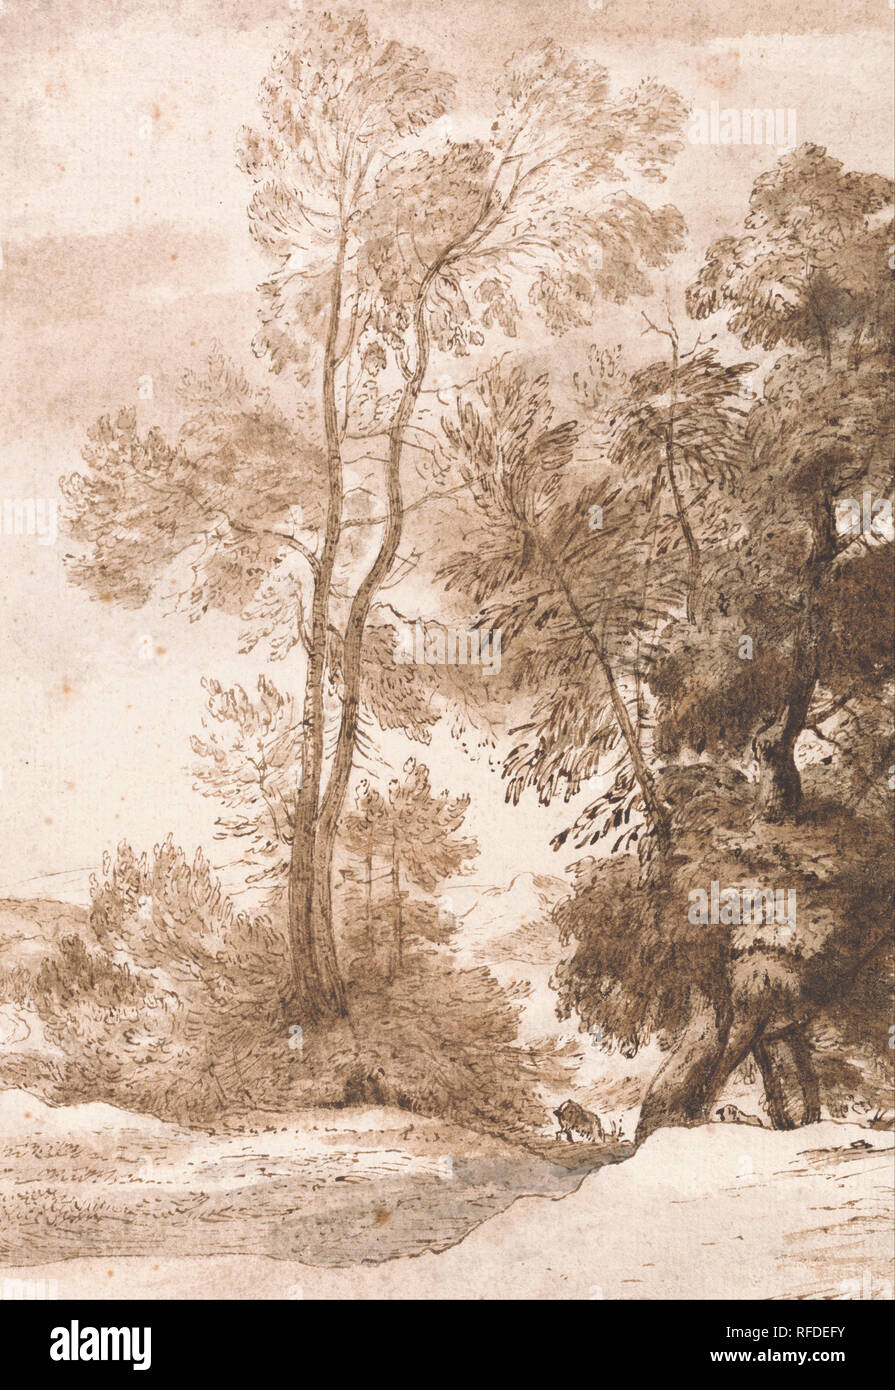 Trees And Deer Date Period 1825 Drawing Pen And Brown Ink With Brown And Gray Wash